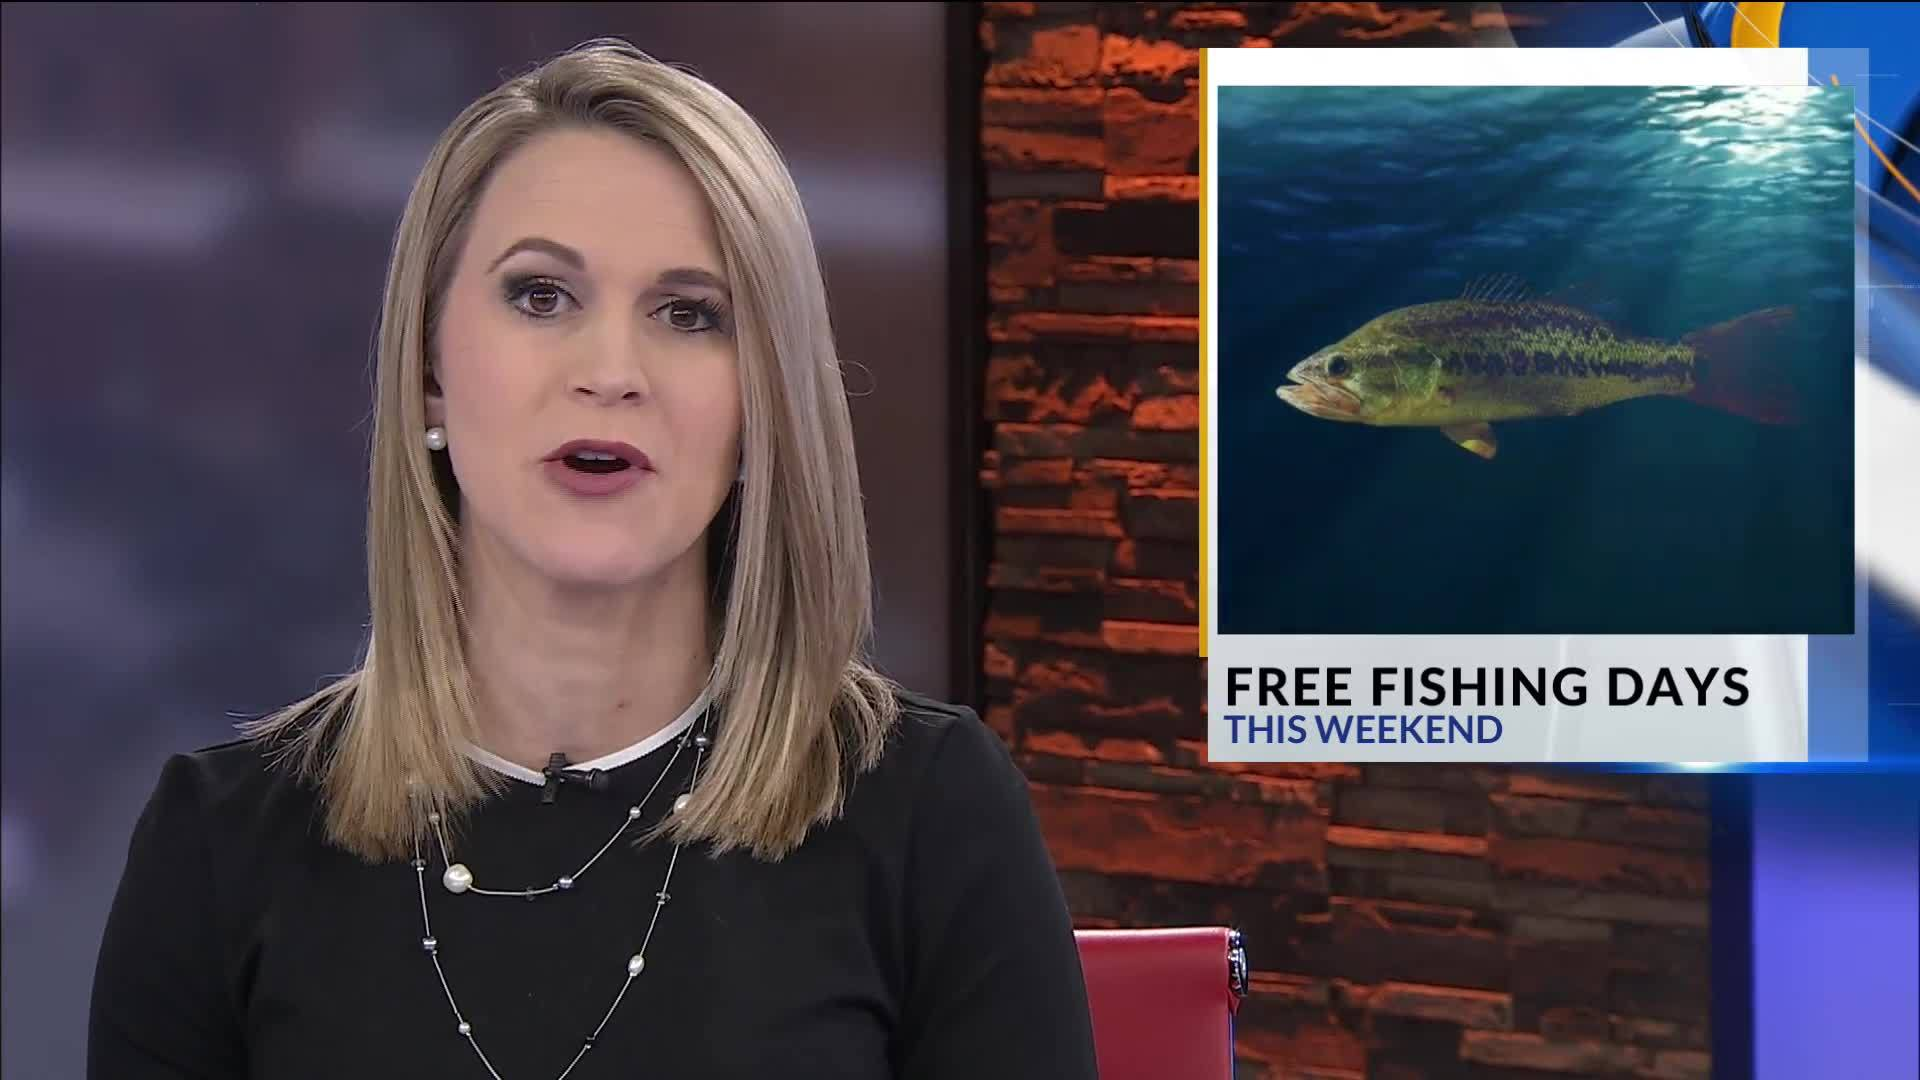 Free_fishing_days_are_coming_up_6_20190604221205